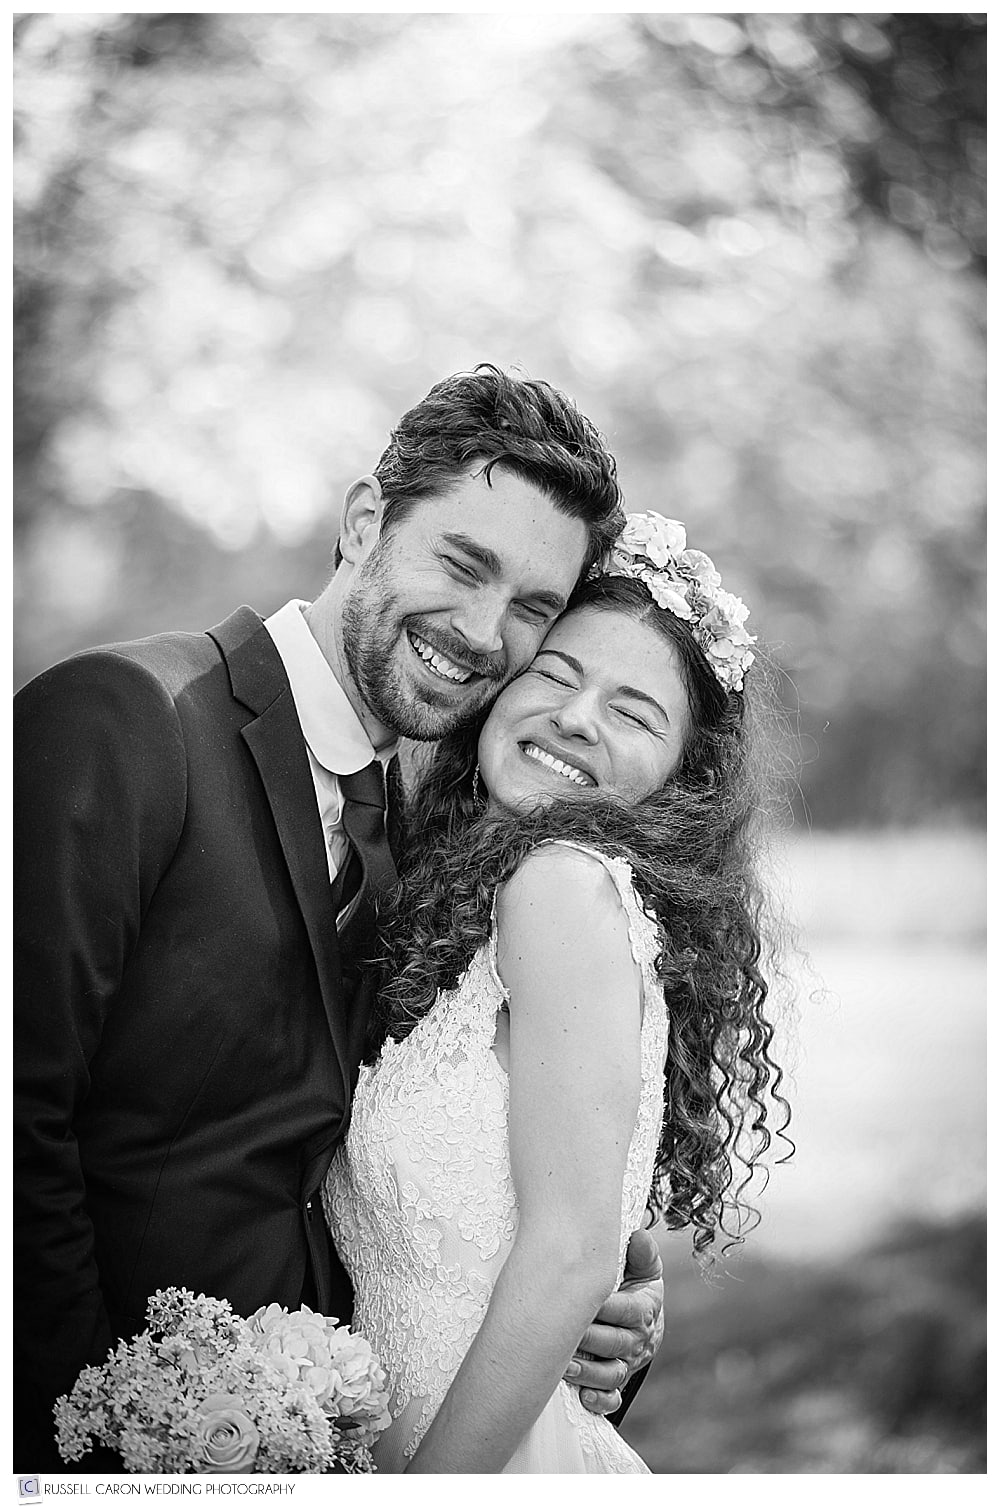 Joyous bride and groom on their wedding day at Shady Lane Farm, New Gloucester, Maine. Our #6 Best Maine Wedding Photos 2017